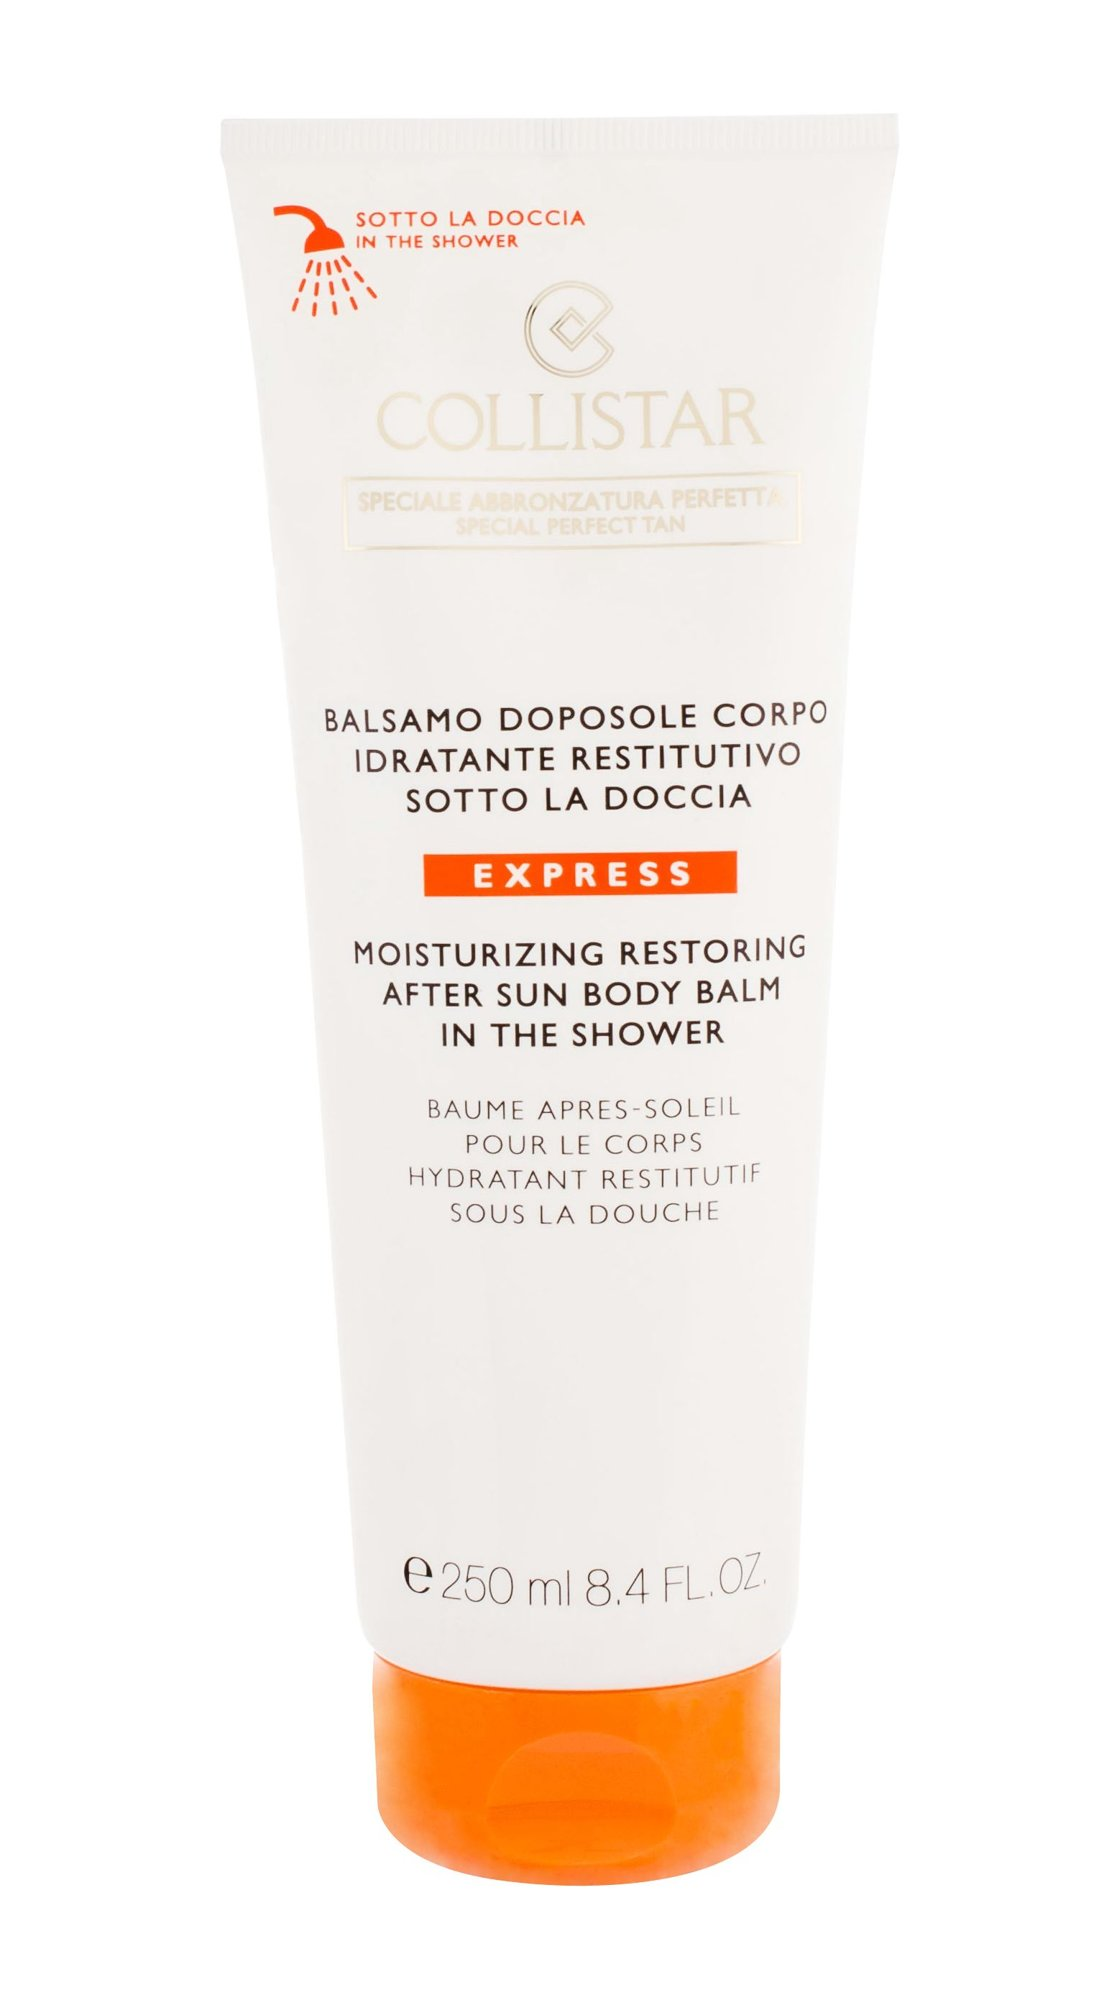 Collistar Special Perfect Tan Cosmetic 250ml